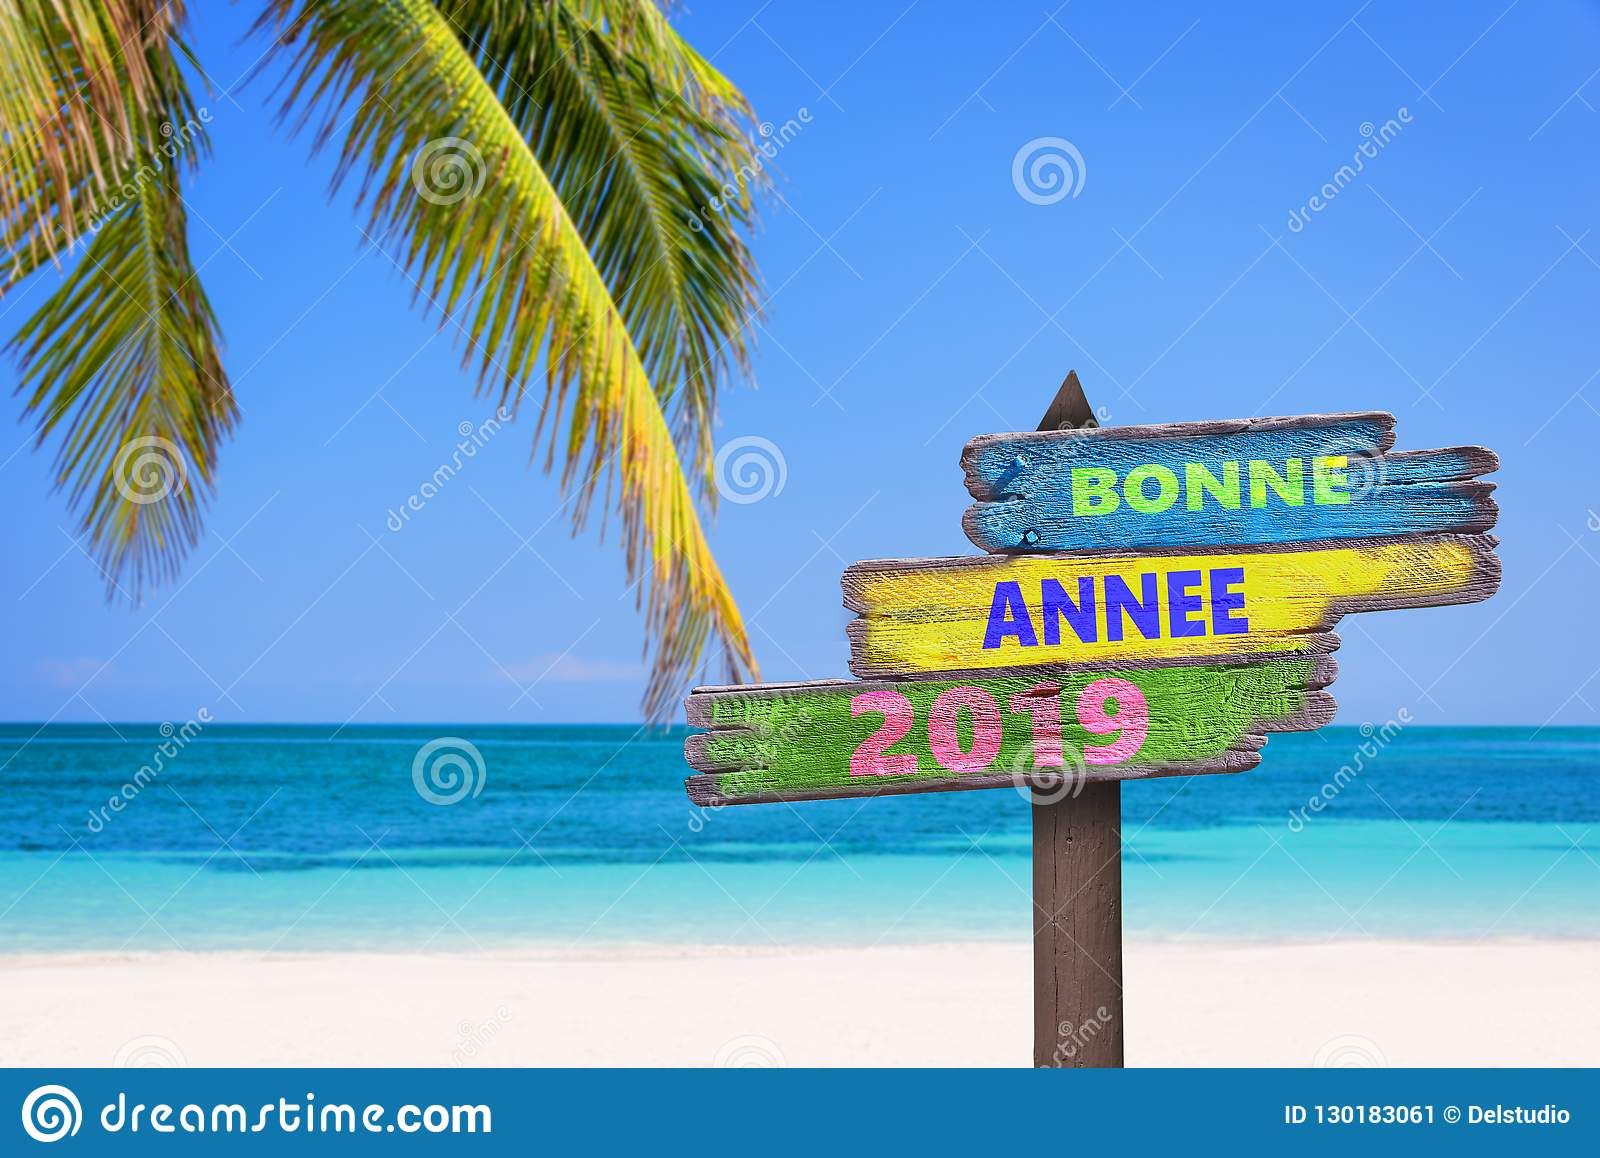 Bonne annee 2019 meaning happy new year in French on a colored wooden direction signs, beach and palm tree